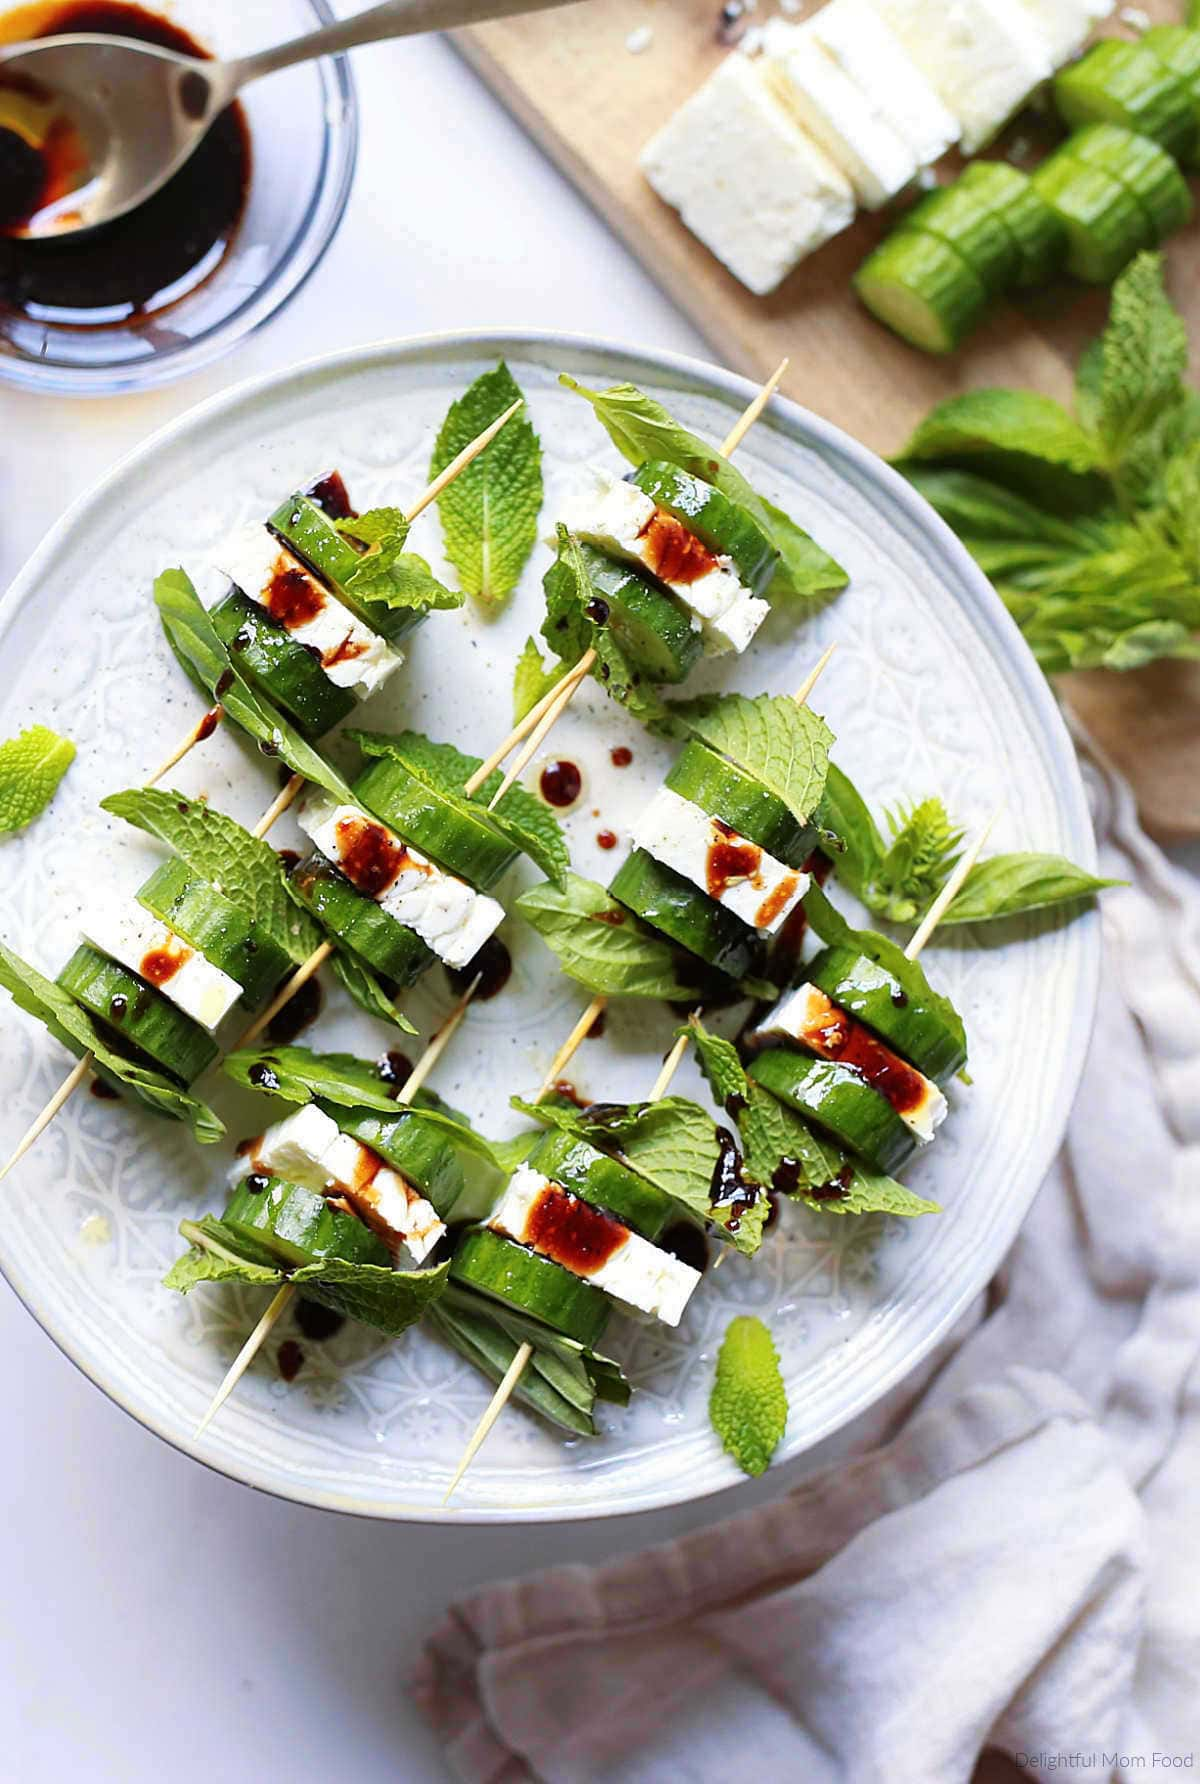 feta cheese and cucumber bites served on toothpicks as an appetizer